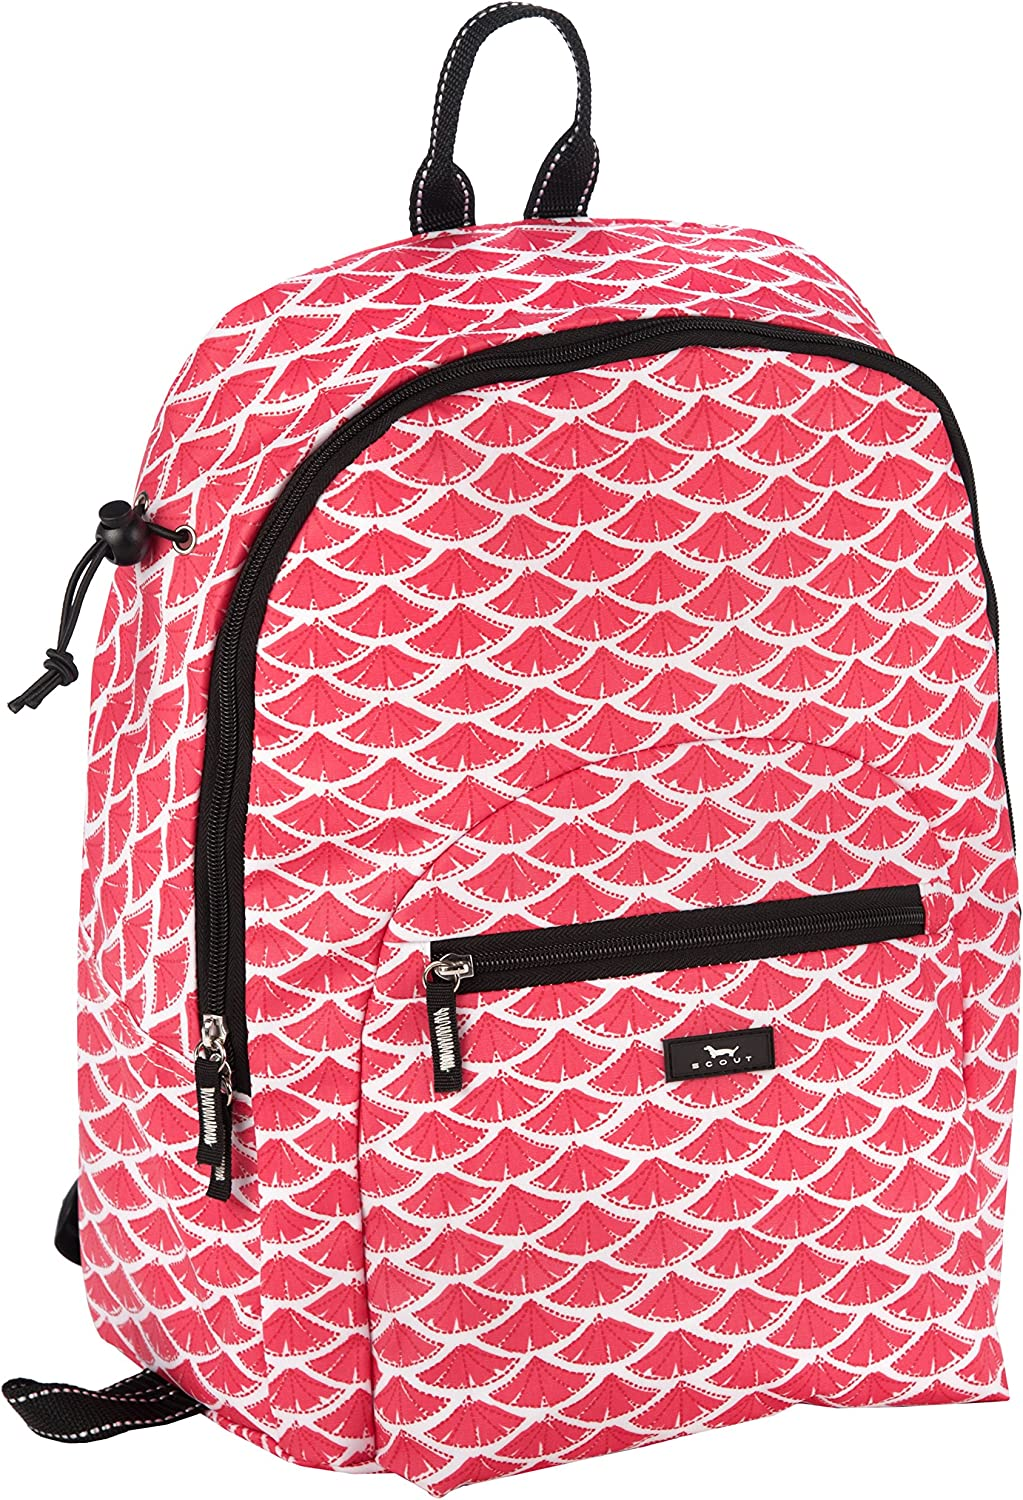 SCOUT Big Draw Backpack School Bag, Interior Laptop Sleeve, Padded & Adjustable Straps, Water Resistant, Zips Closed